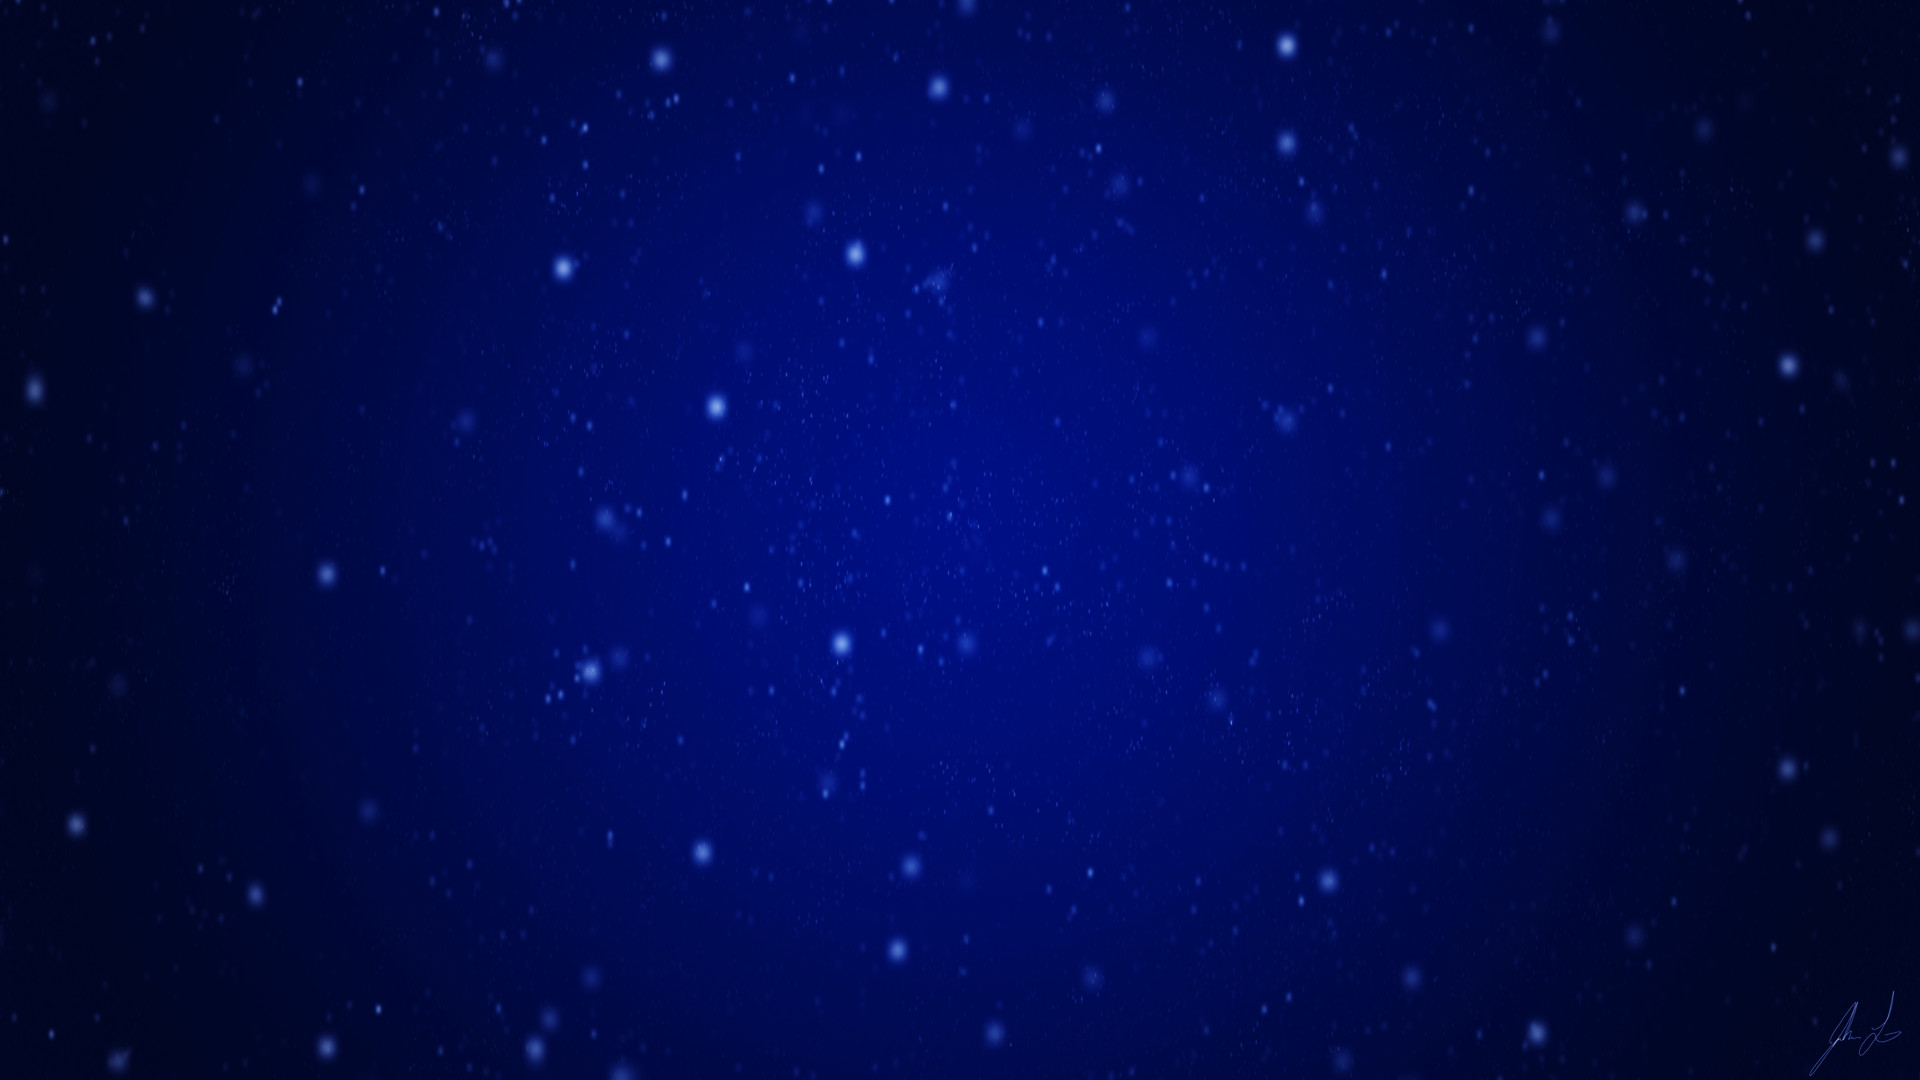 Dark Blue Color wallpaper   309614 1920x1080